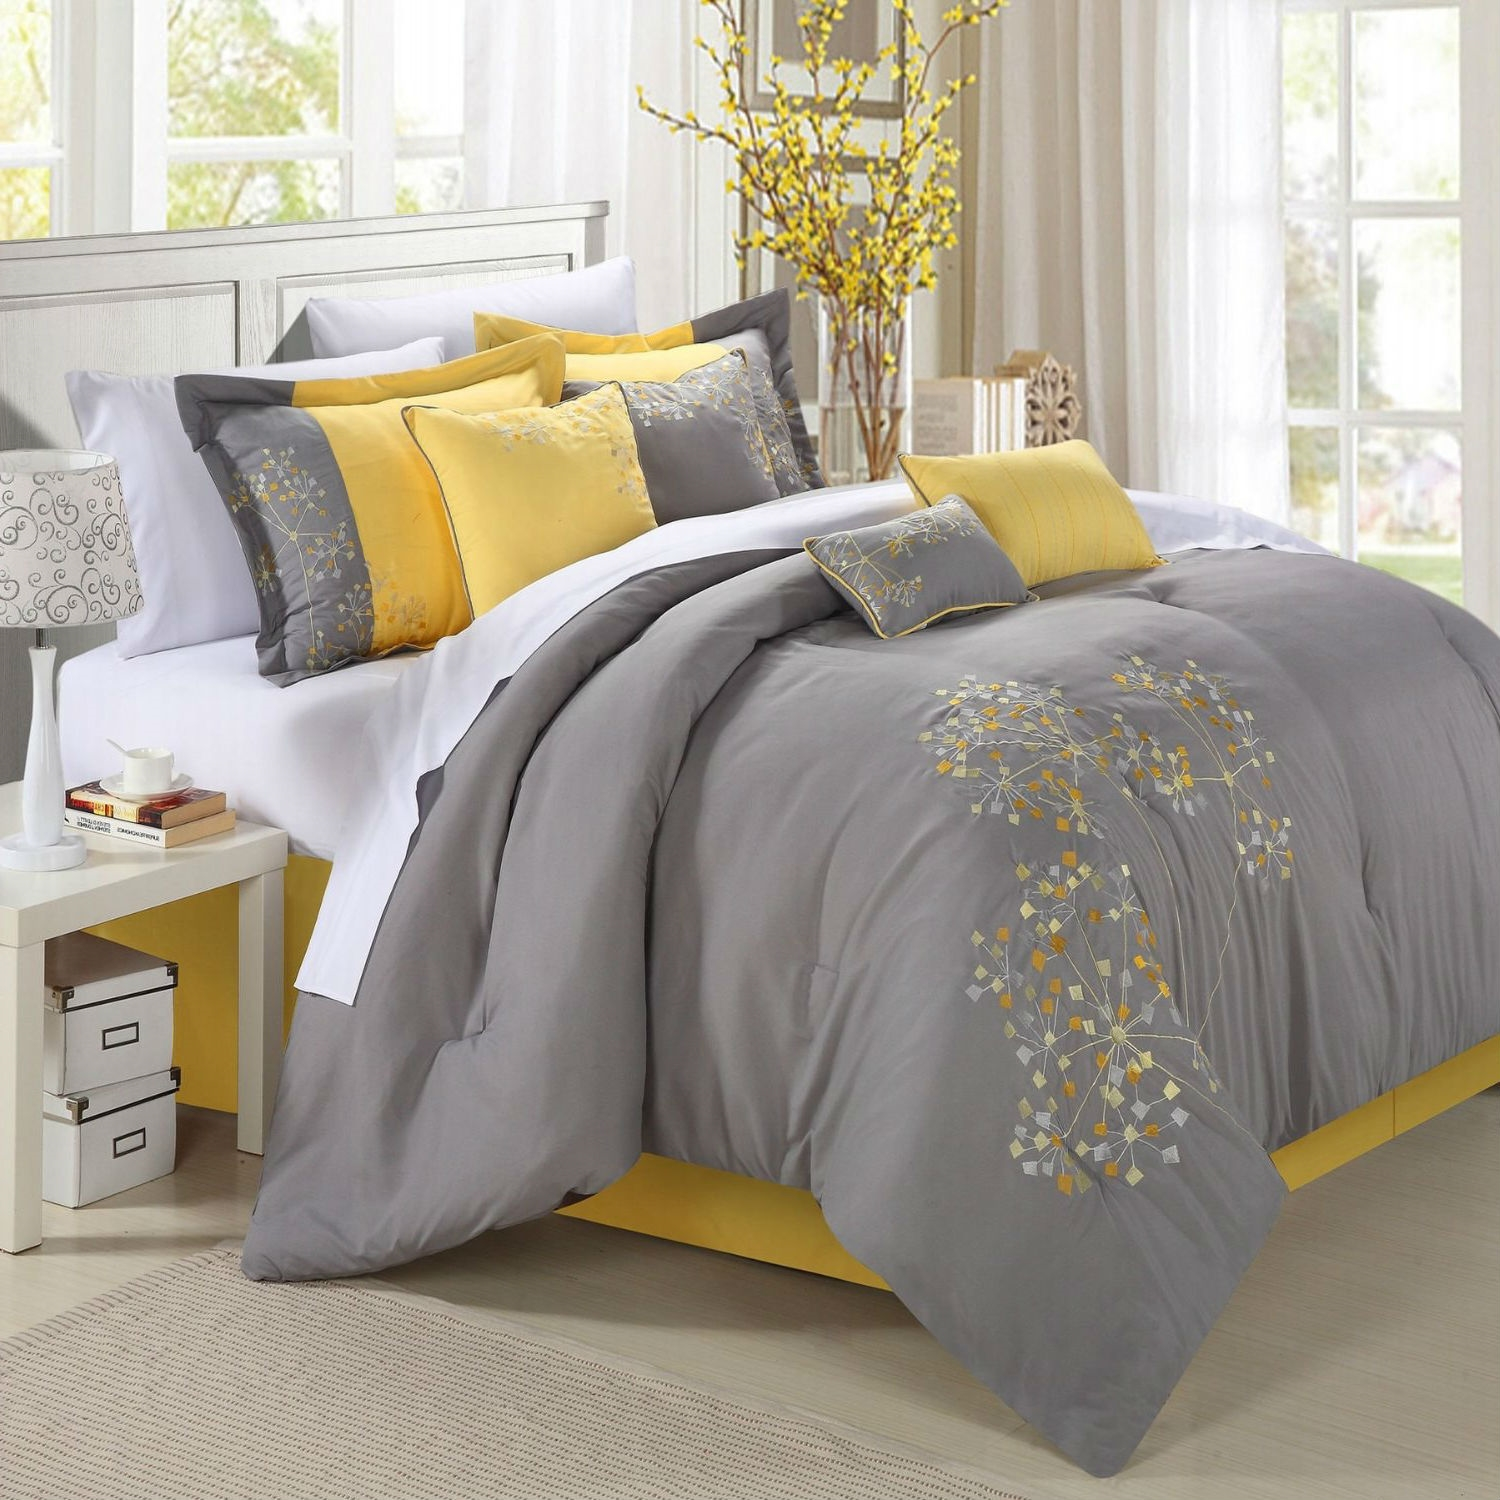 King Size 8 Piece Modern Yellow Grey Floral Comforter Set Fastfurnishings Com